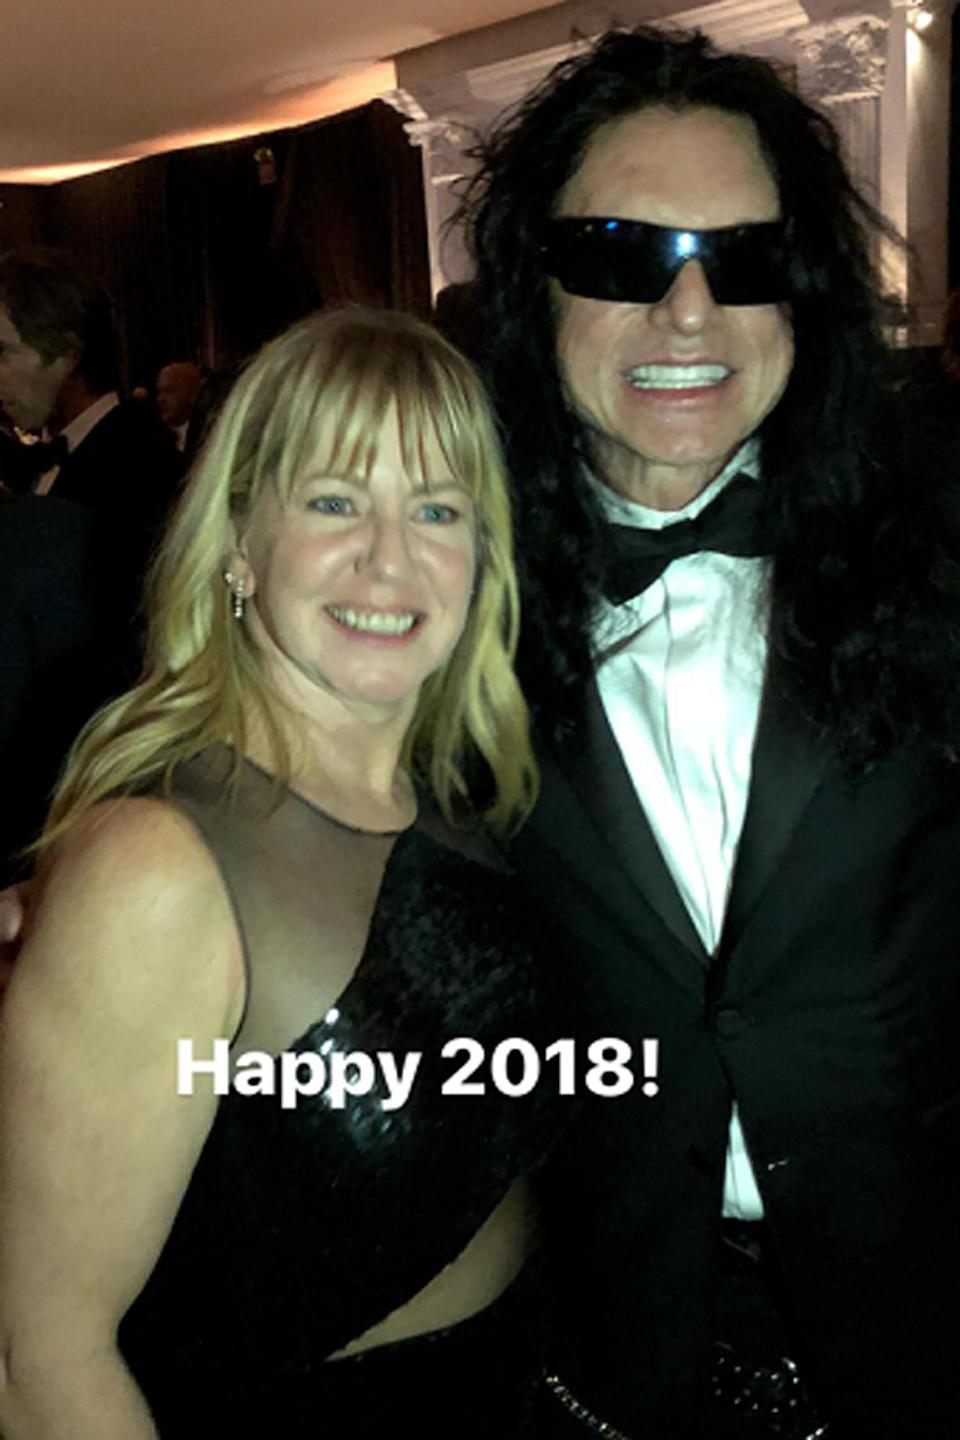 Tonya Harding and Tommy Wiseau together at the Golden Globes.